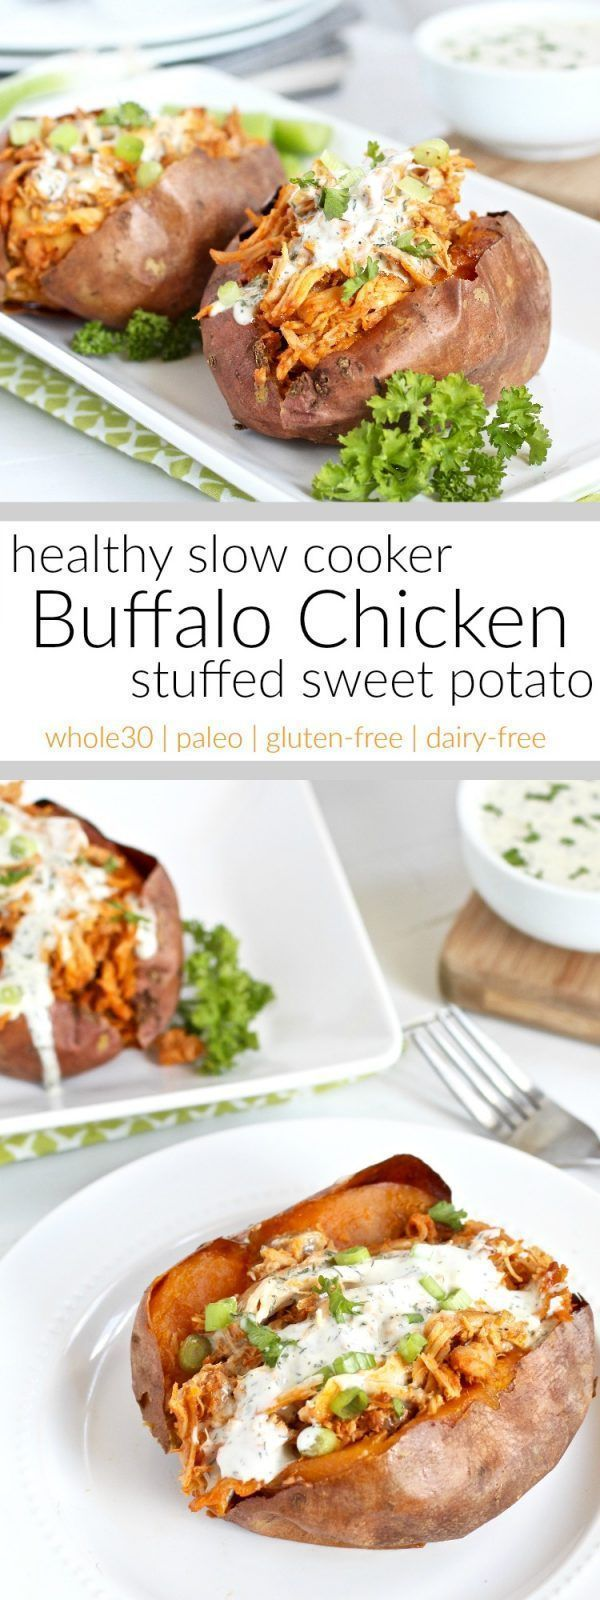 A hearty and healthy whole30-friendly slow cooker buffalo chicken that's shredded and stuffed inside of a perfectly baked or grill sweet potato. A recipe for all you buffalo chicken fans.